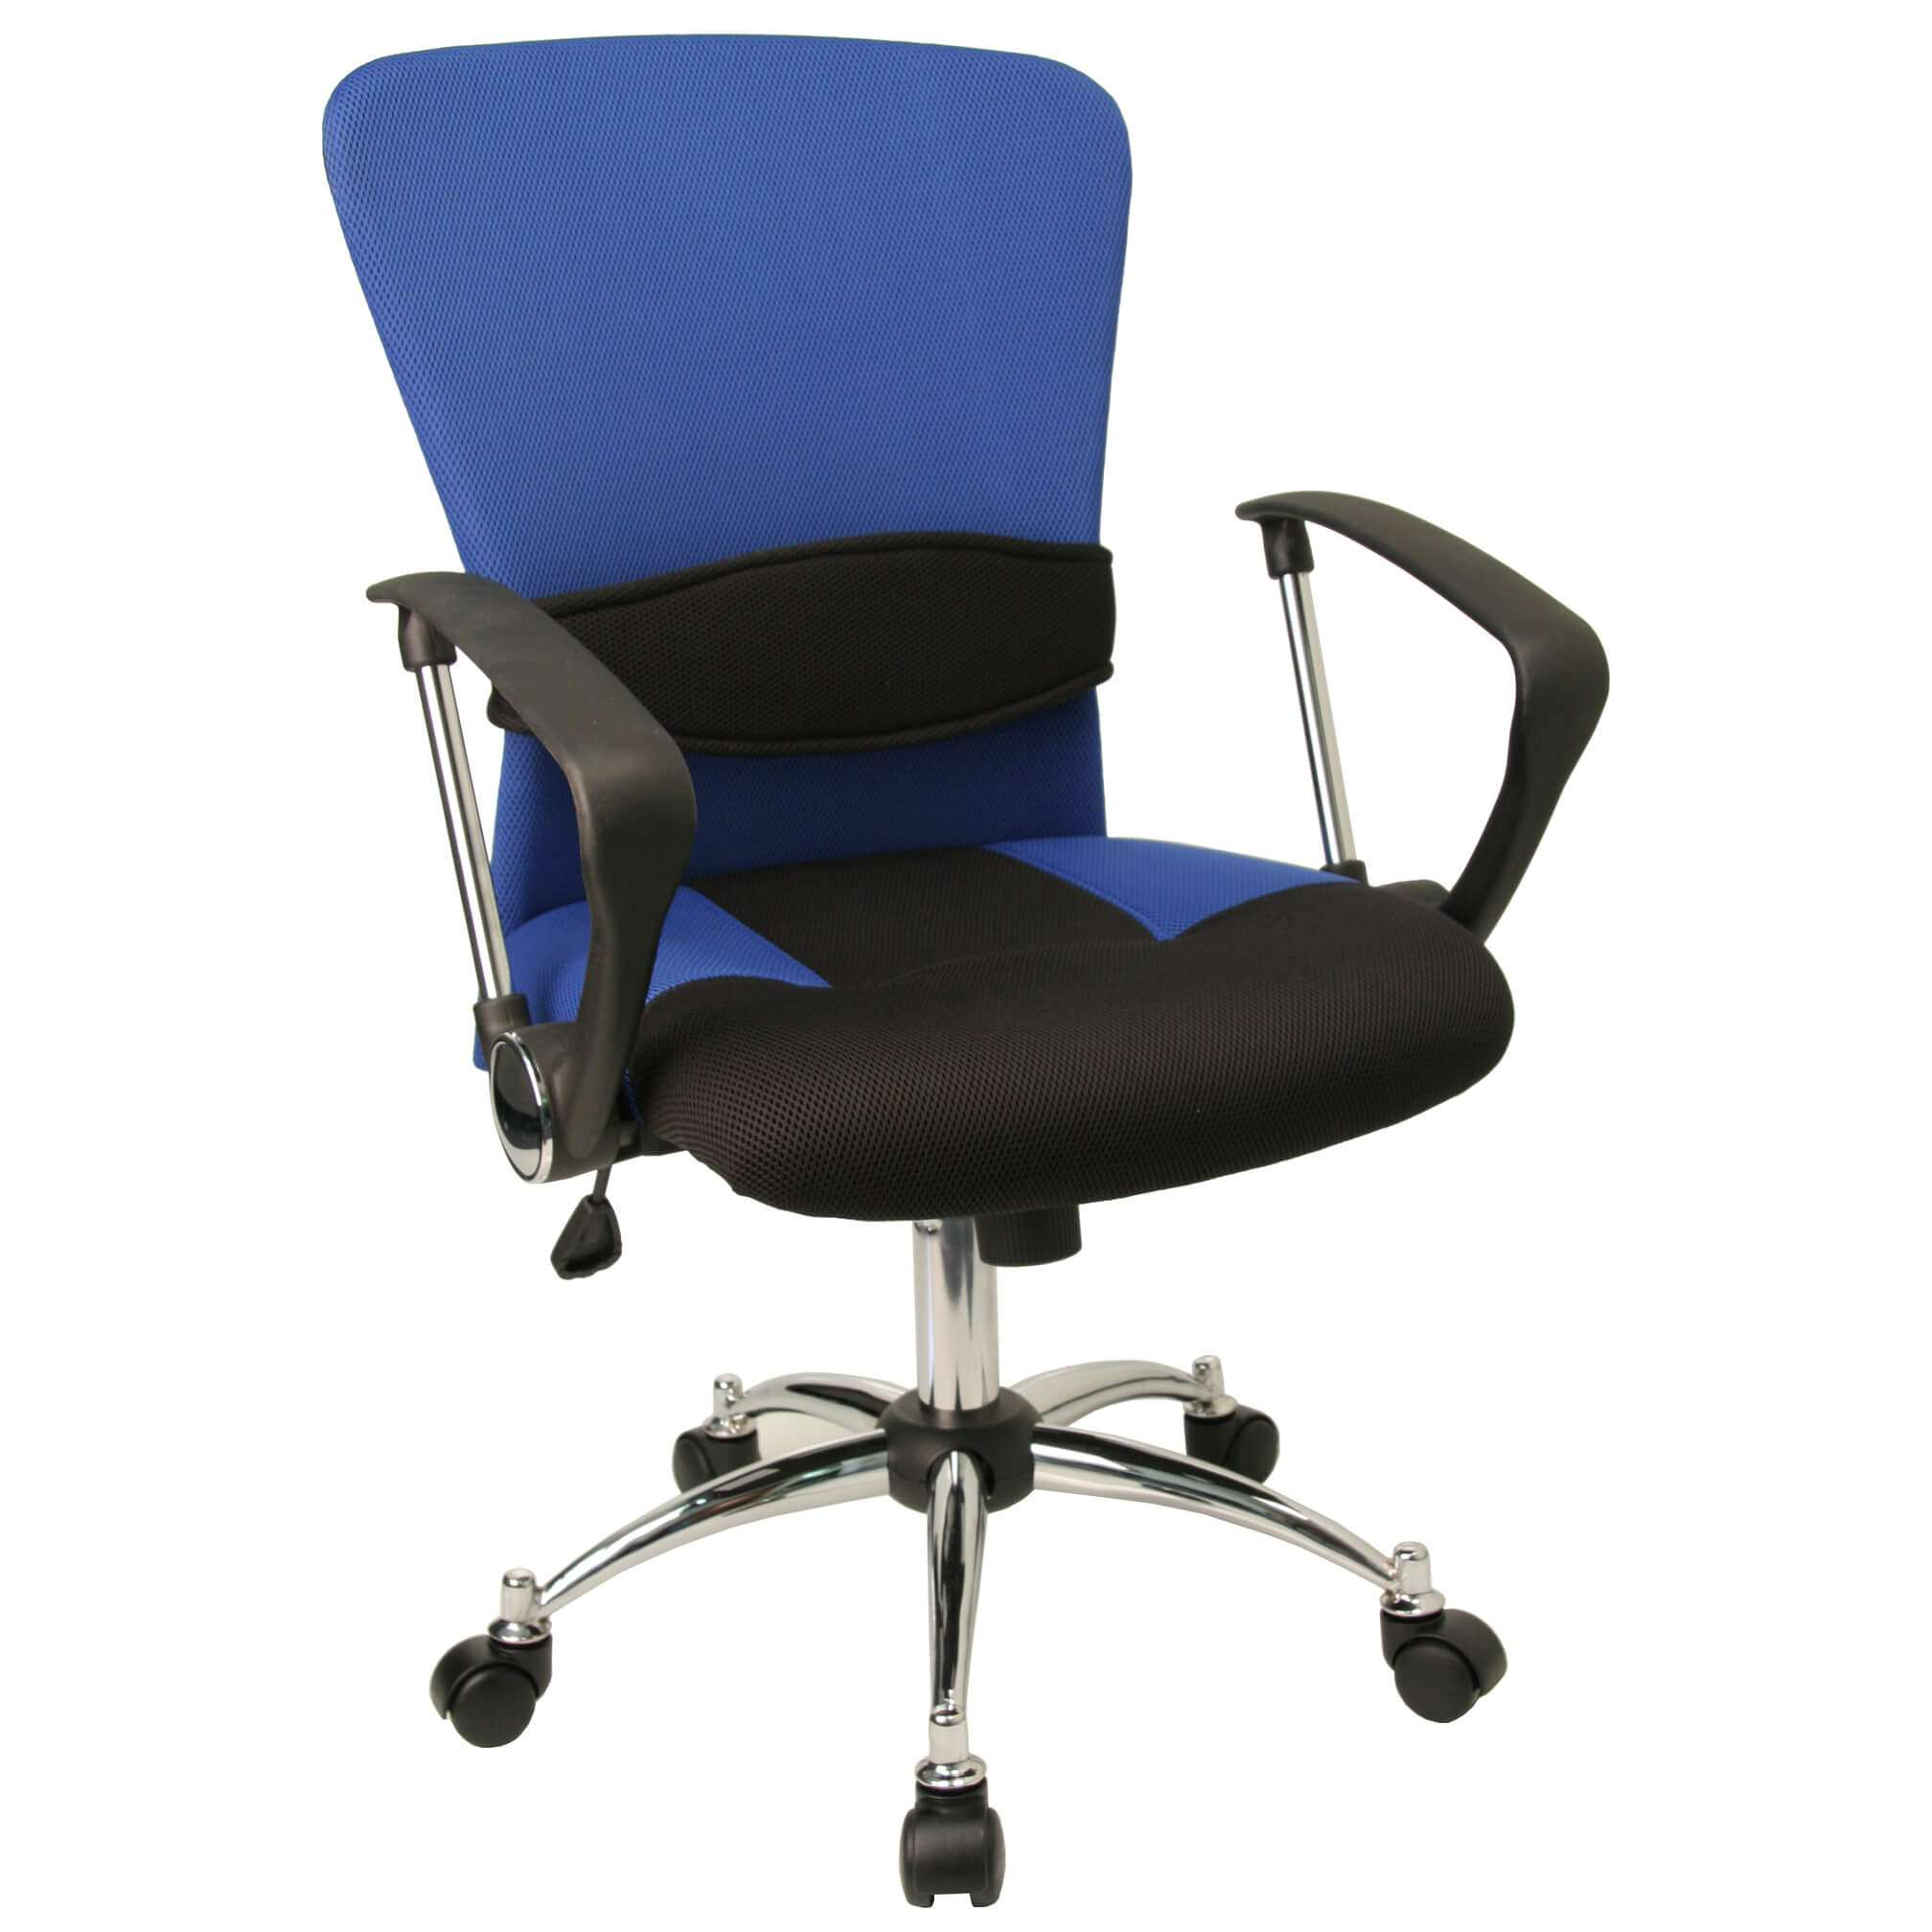 Lower Back Support For Office Chair Night Star Lumbar Support Office Chair